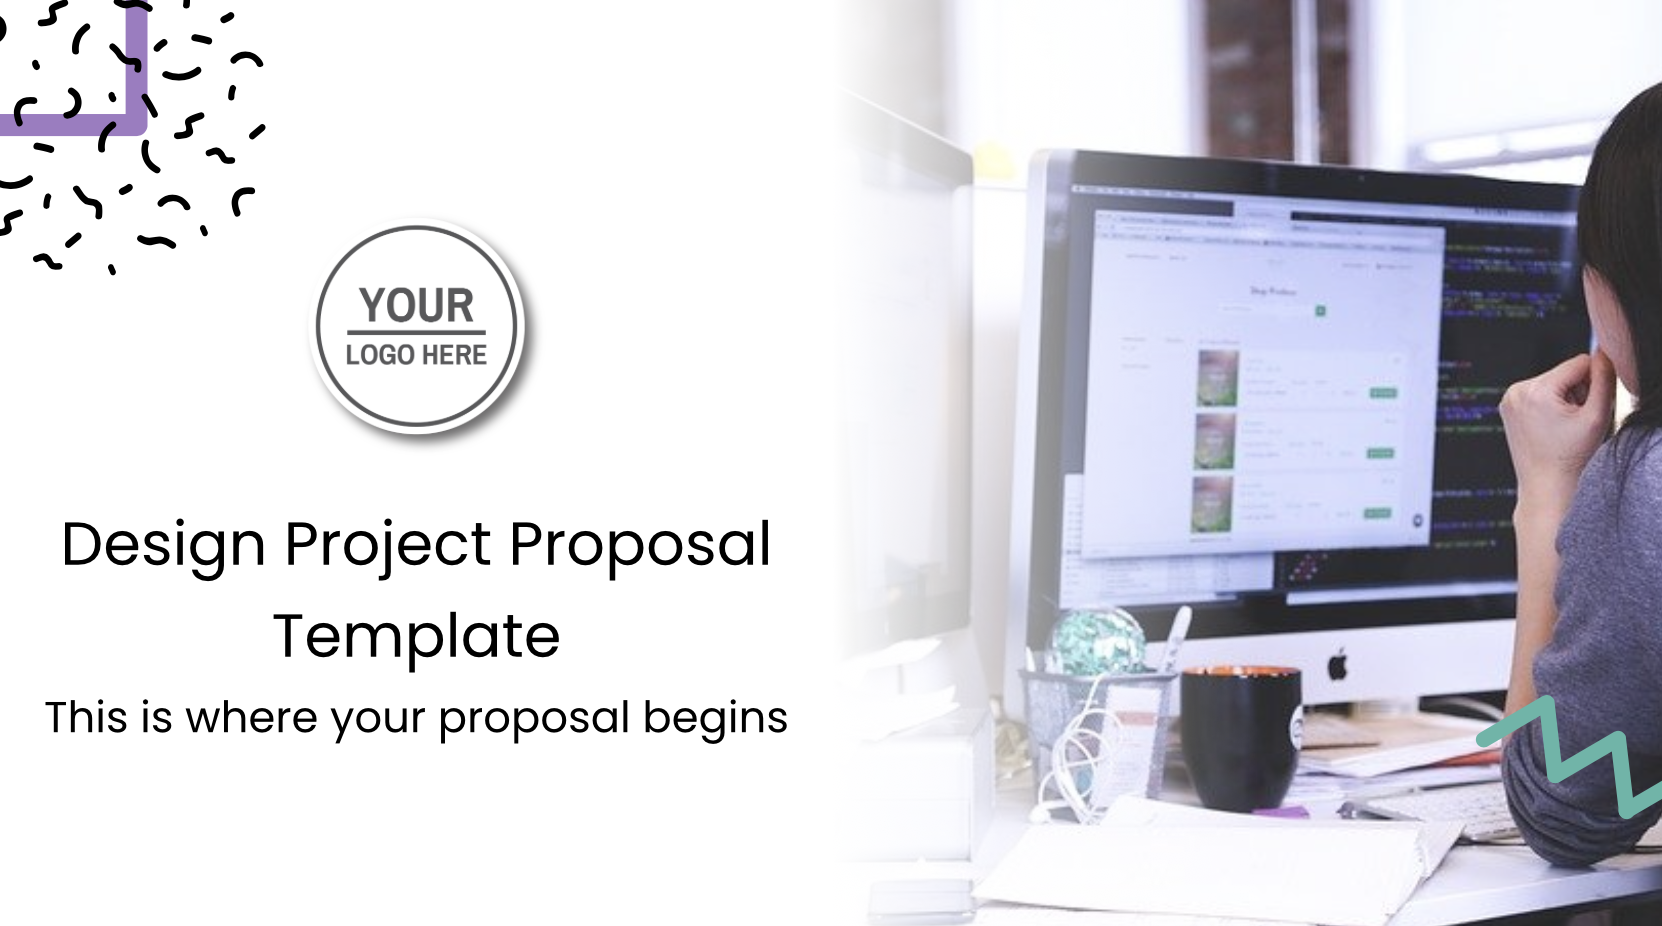 What Should a Project Proposal Template Include? Disclaimer, Table of Contents, Name of Organization & Project Title, Industries that the company has worked in